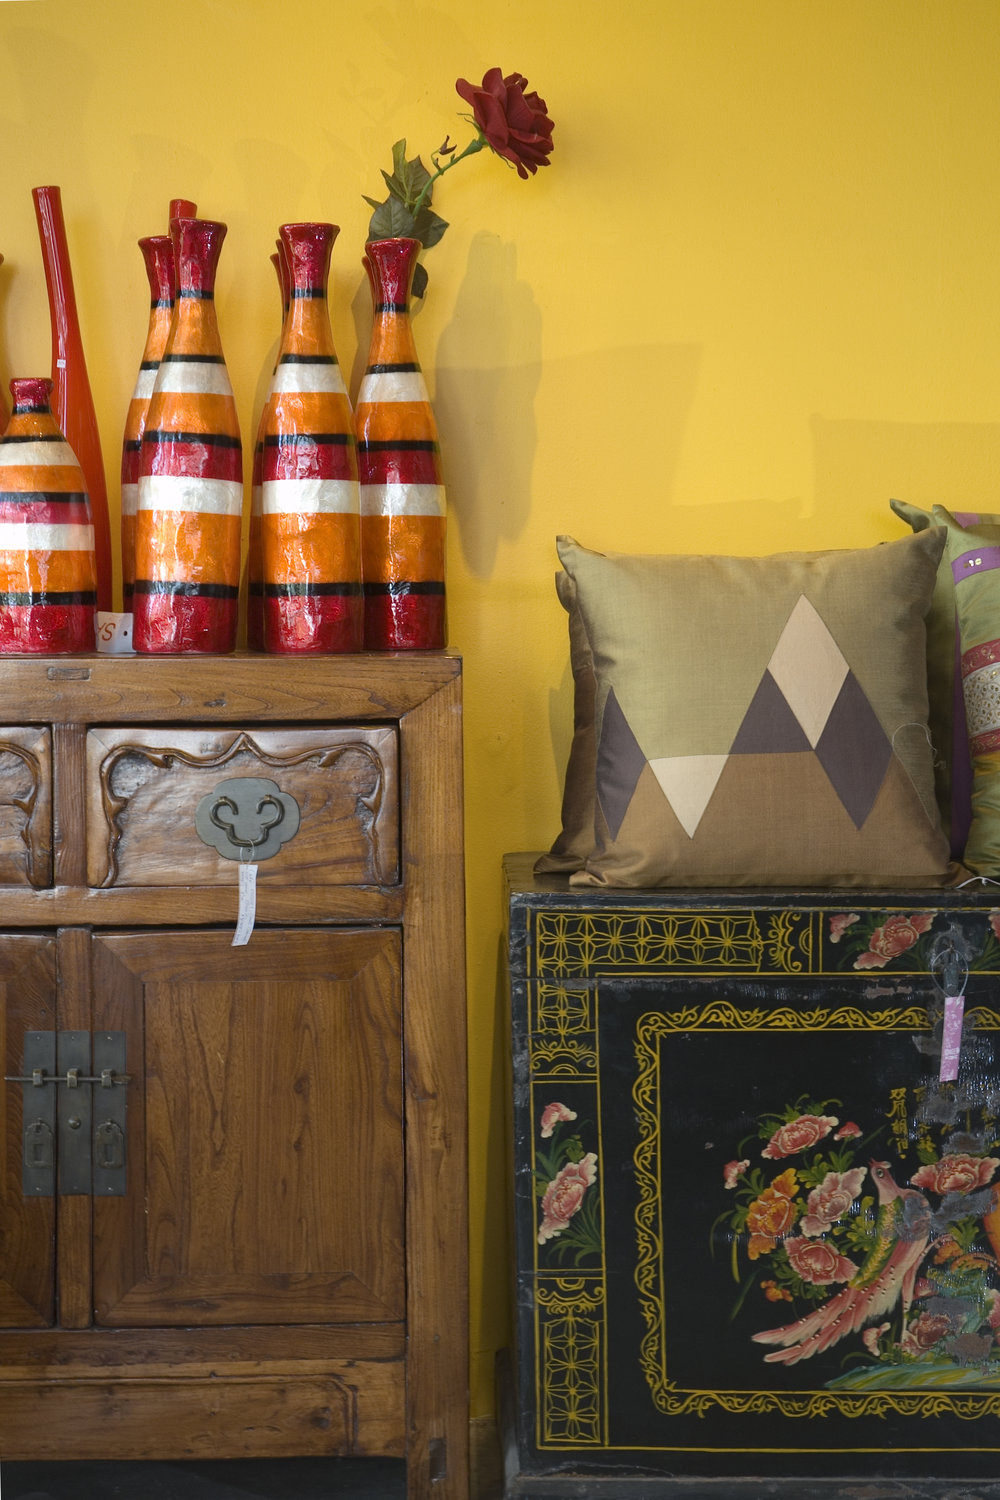 Antique Chinese cabinets are set off against very modern and playful home accessories at Ginger, a home furnishings shop best known for its eclectic mix of modern and antique styles.